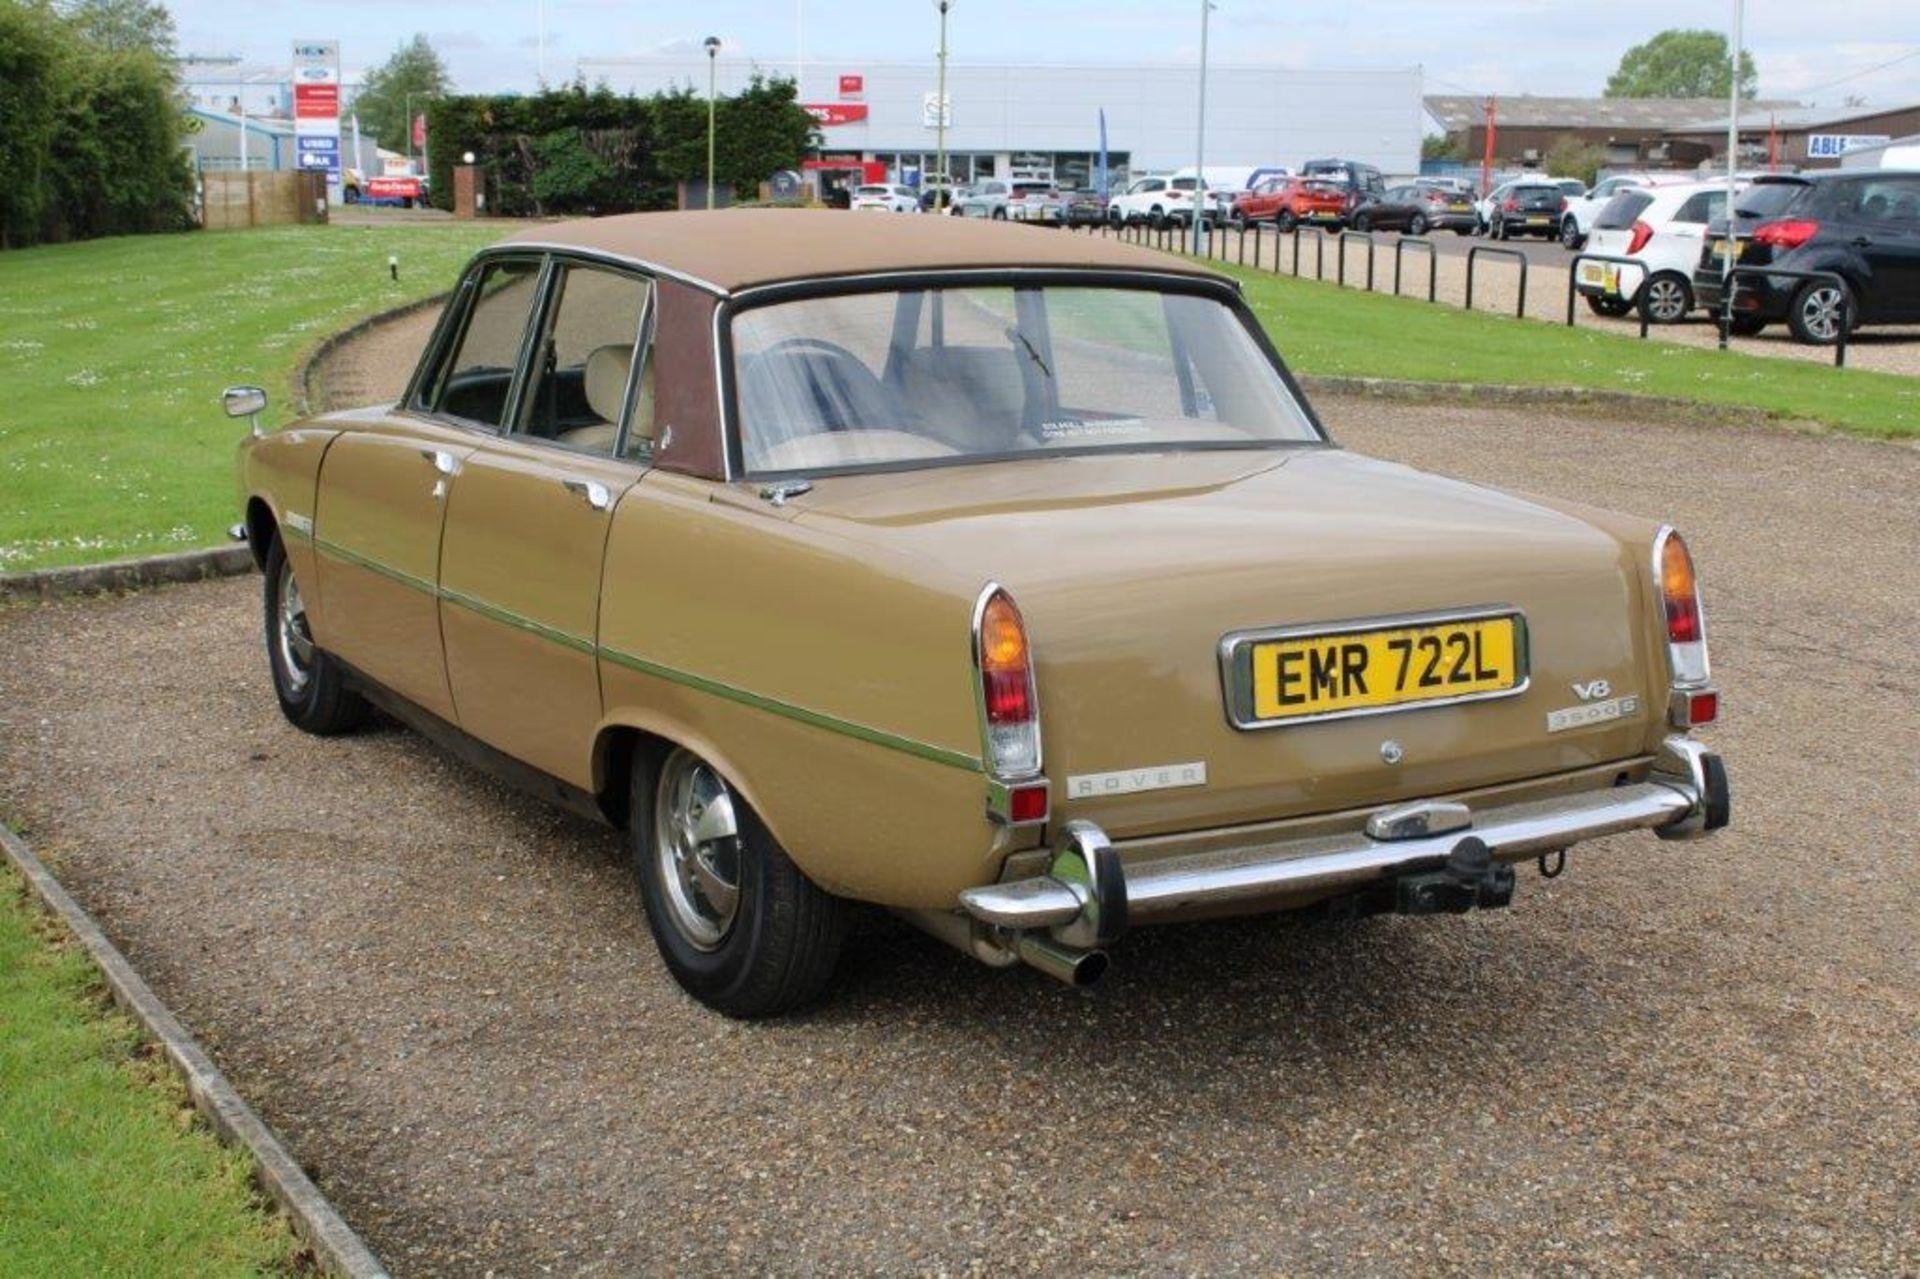 1970 Rover P6 3500 S 1 of 6 development cars - Image 6 of 21